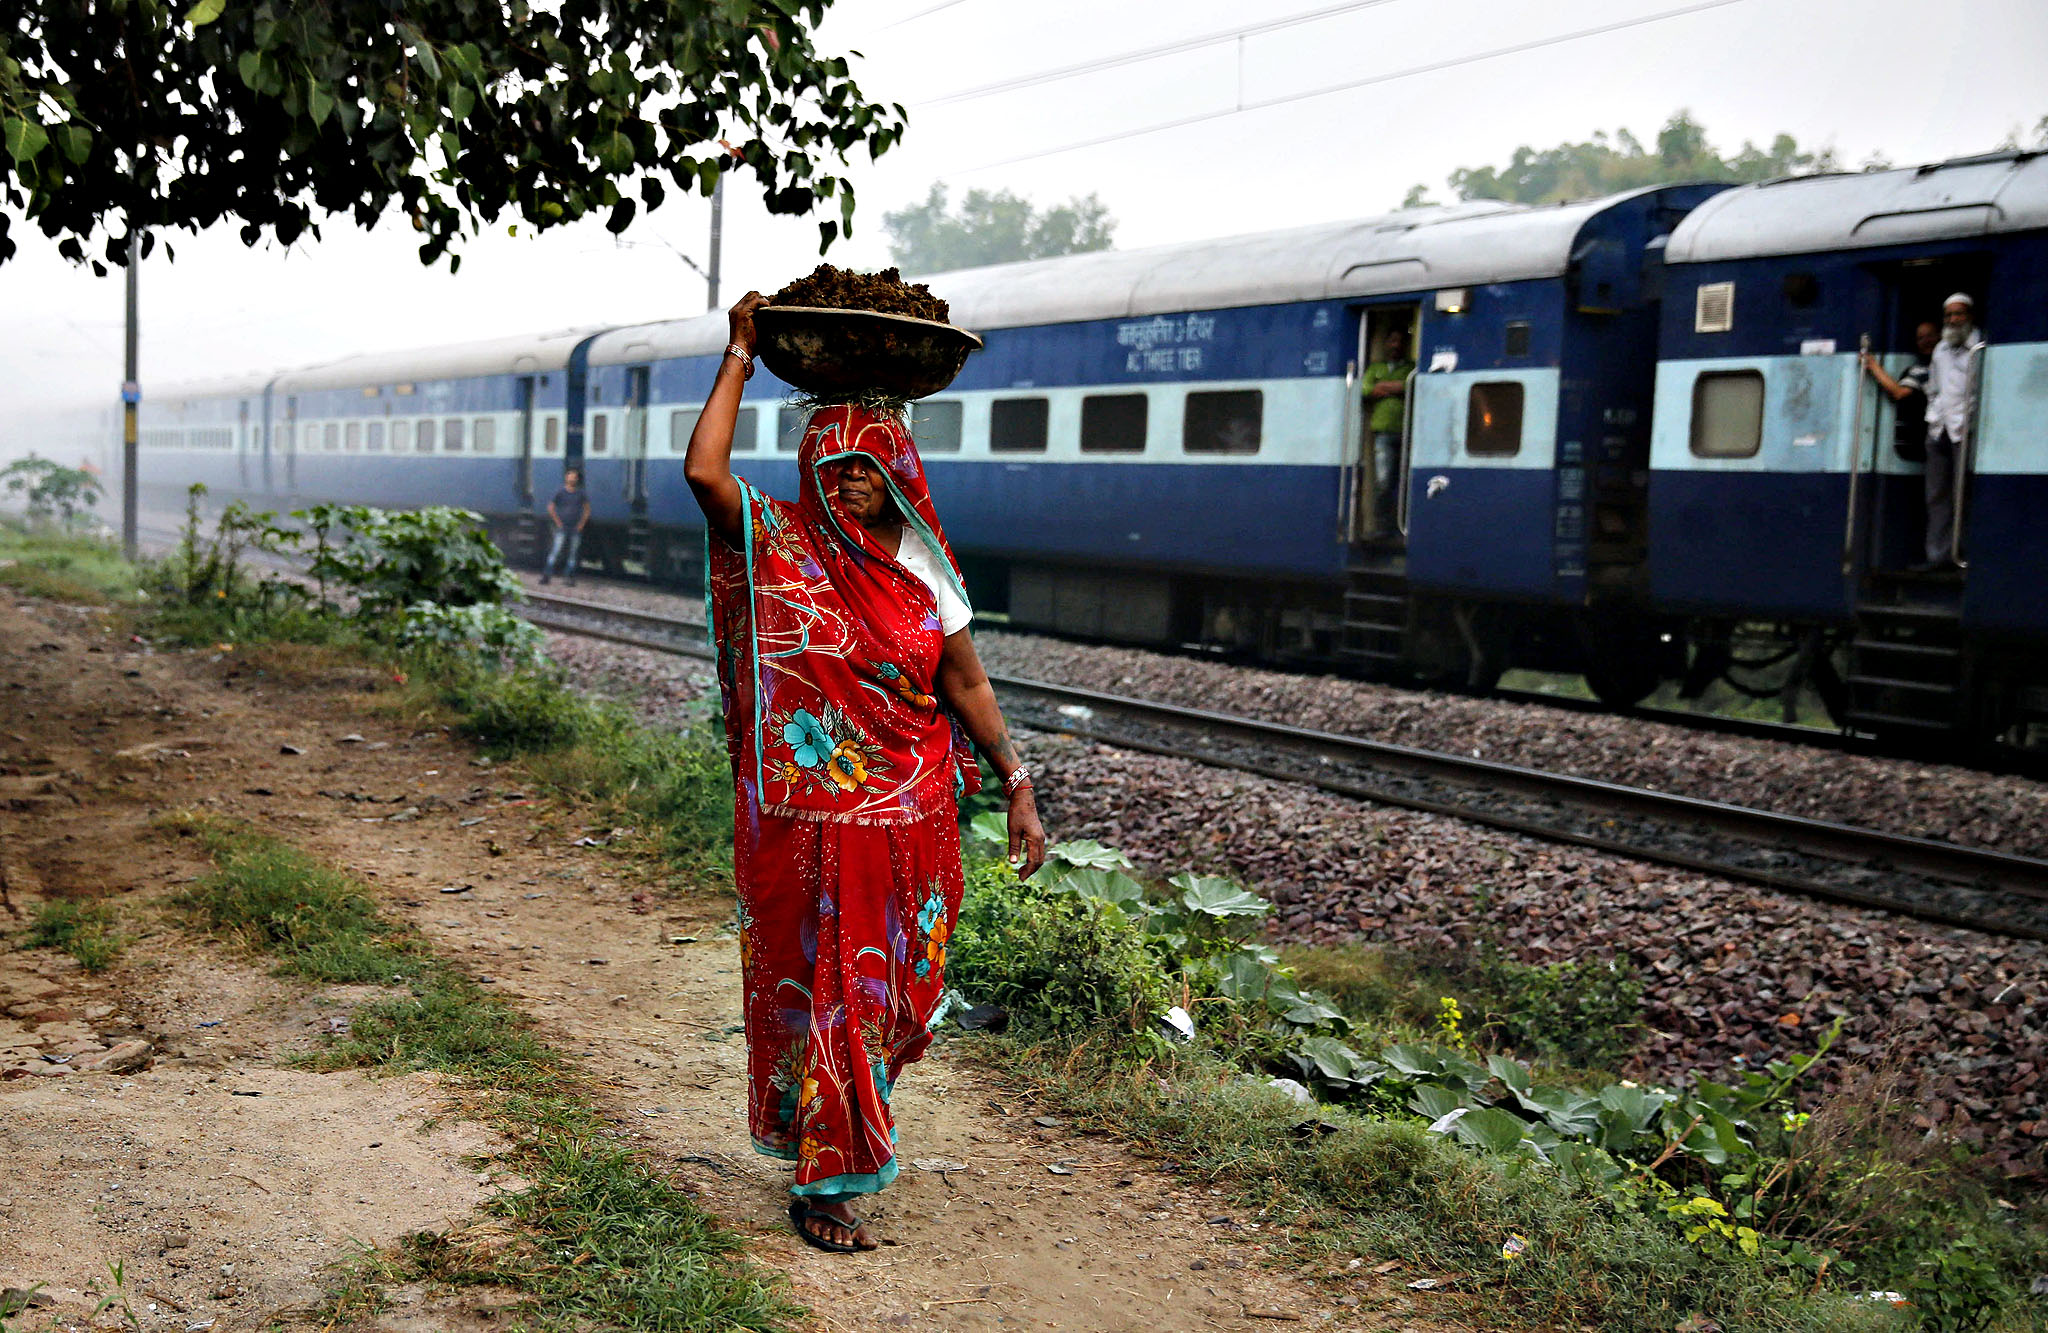 An Indian woman carries cow dung to prepare cow dung cake on the outskirts of Allahabad, India, Wednesday, Oct. 22, 2014. Cow dung cakes are popularly used as fuel for cooking in rural India. (AP Photo/Rajesh Kumar Singh)